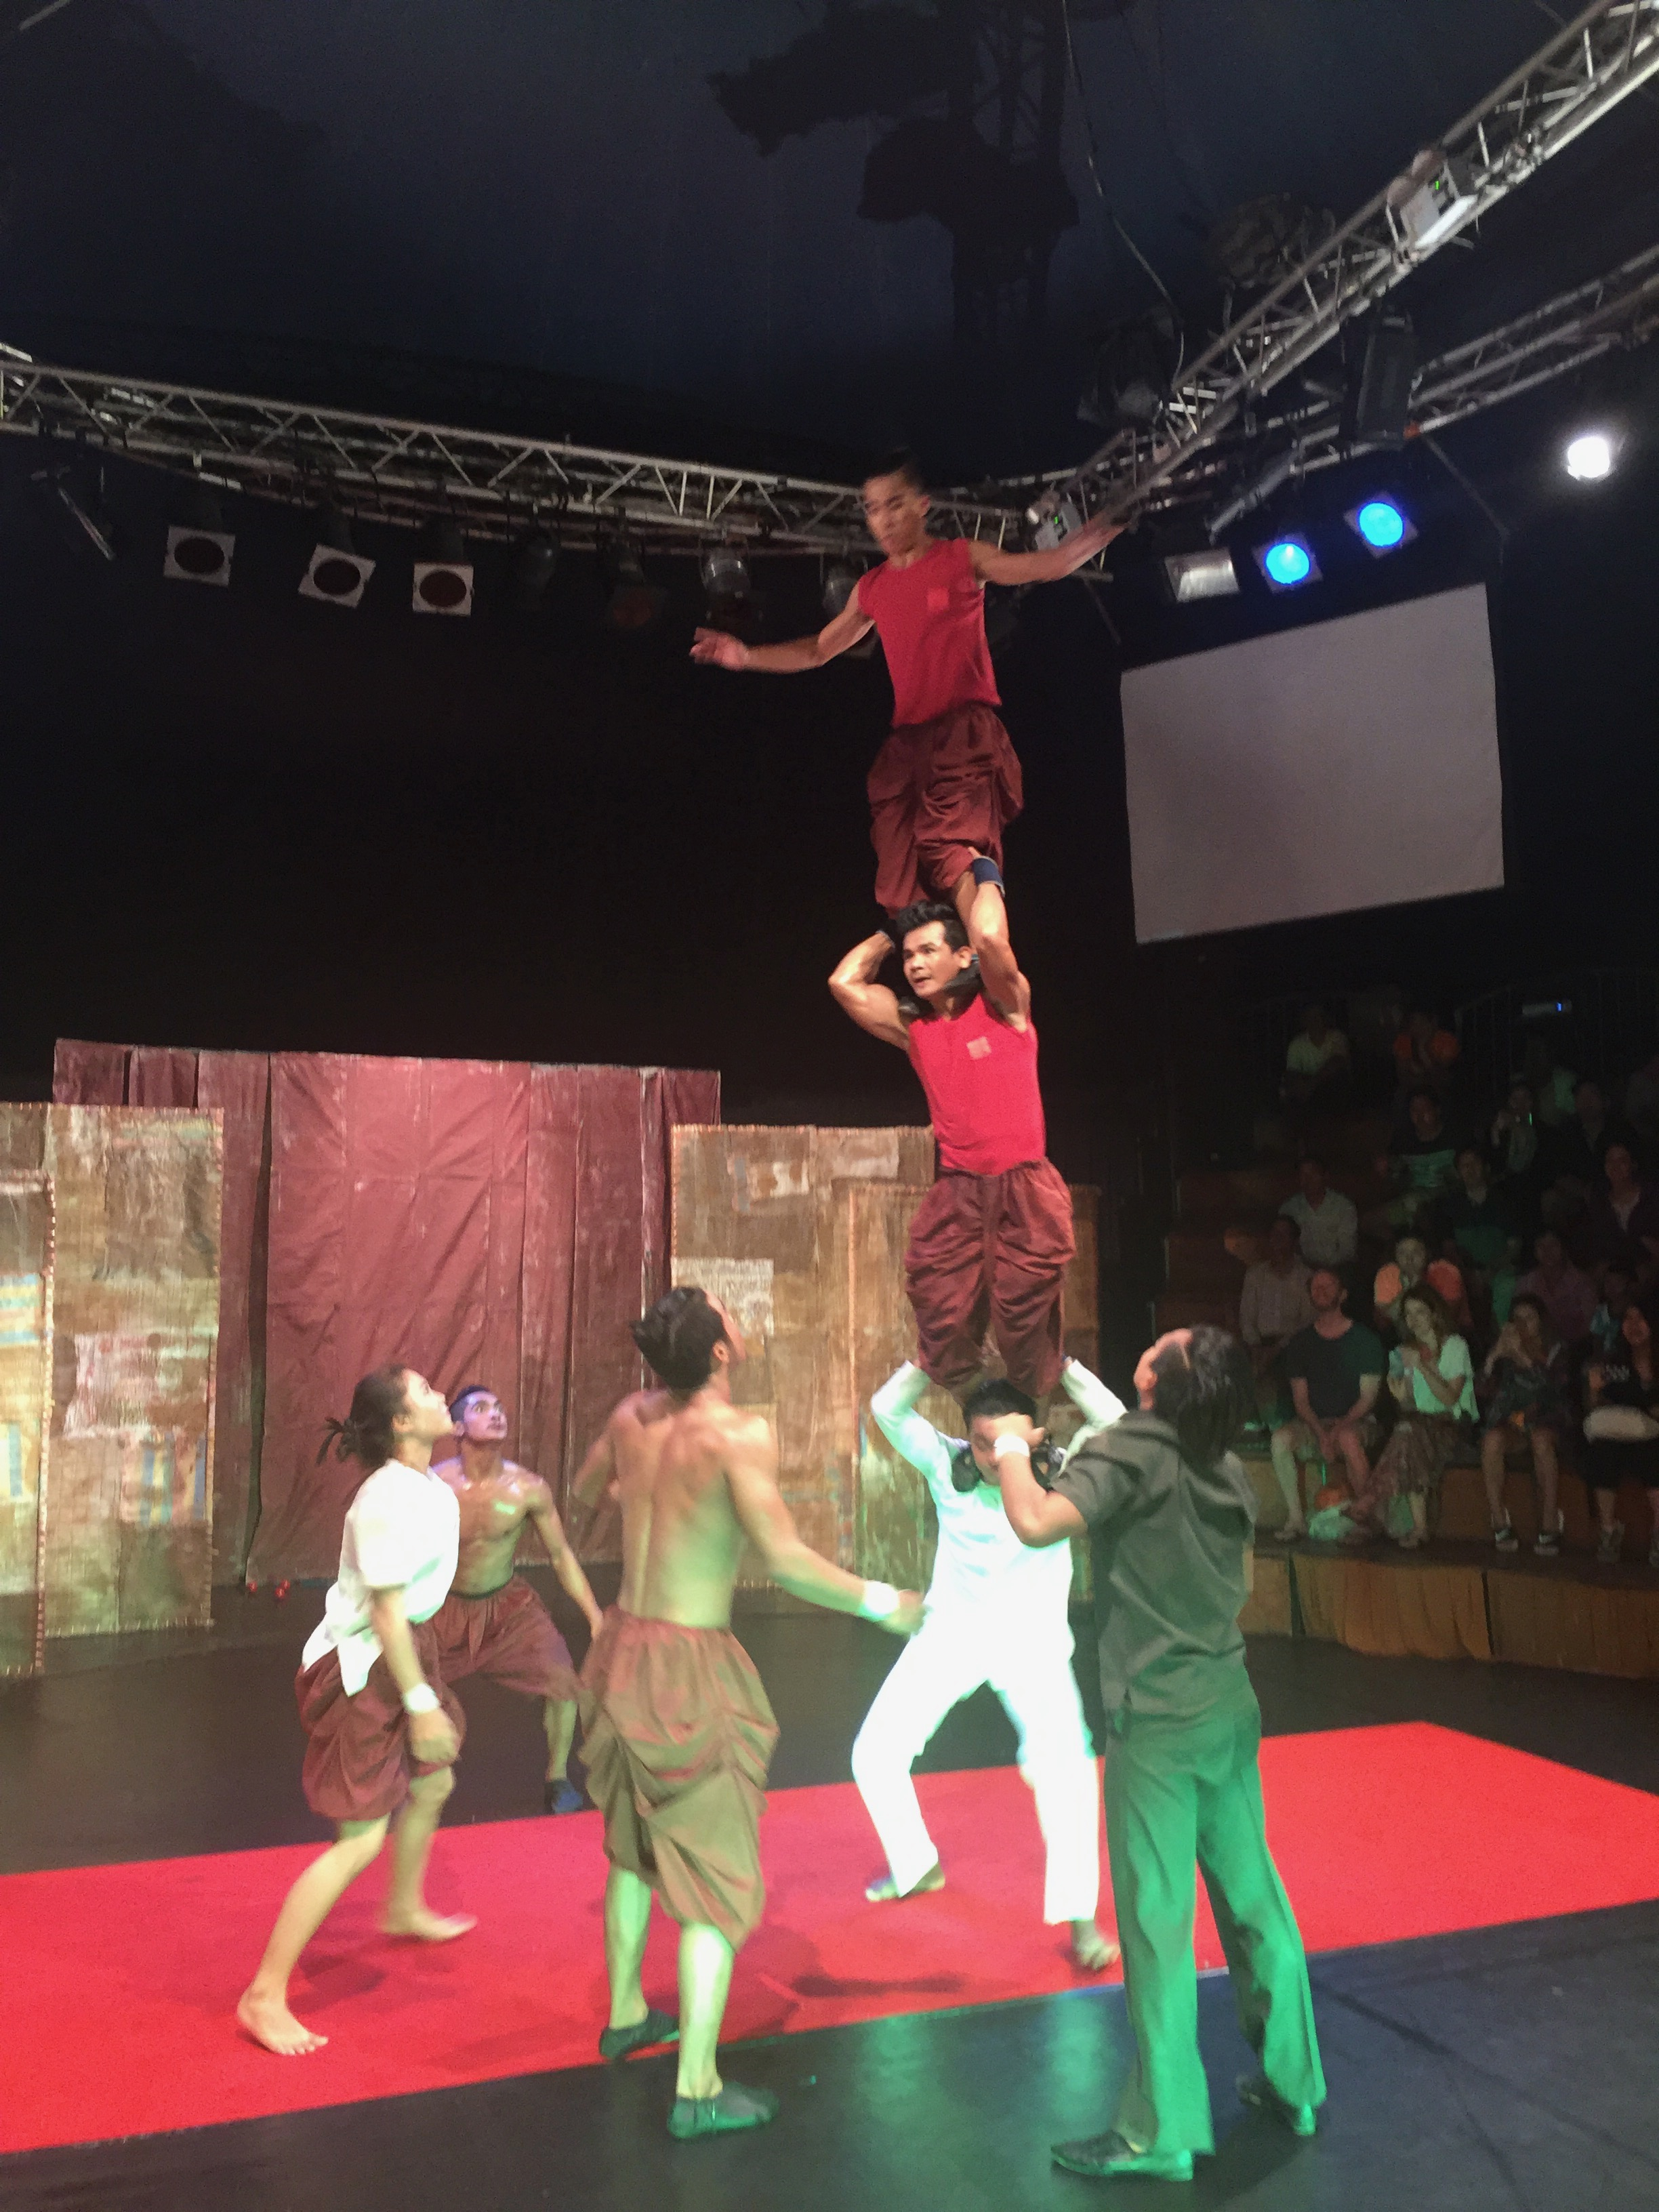 The Talents Of The Performers At The Phare Circus In Siem Reap, Cambodia Are Outstanding!